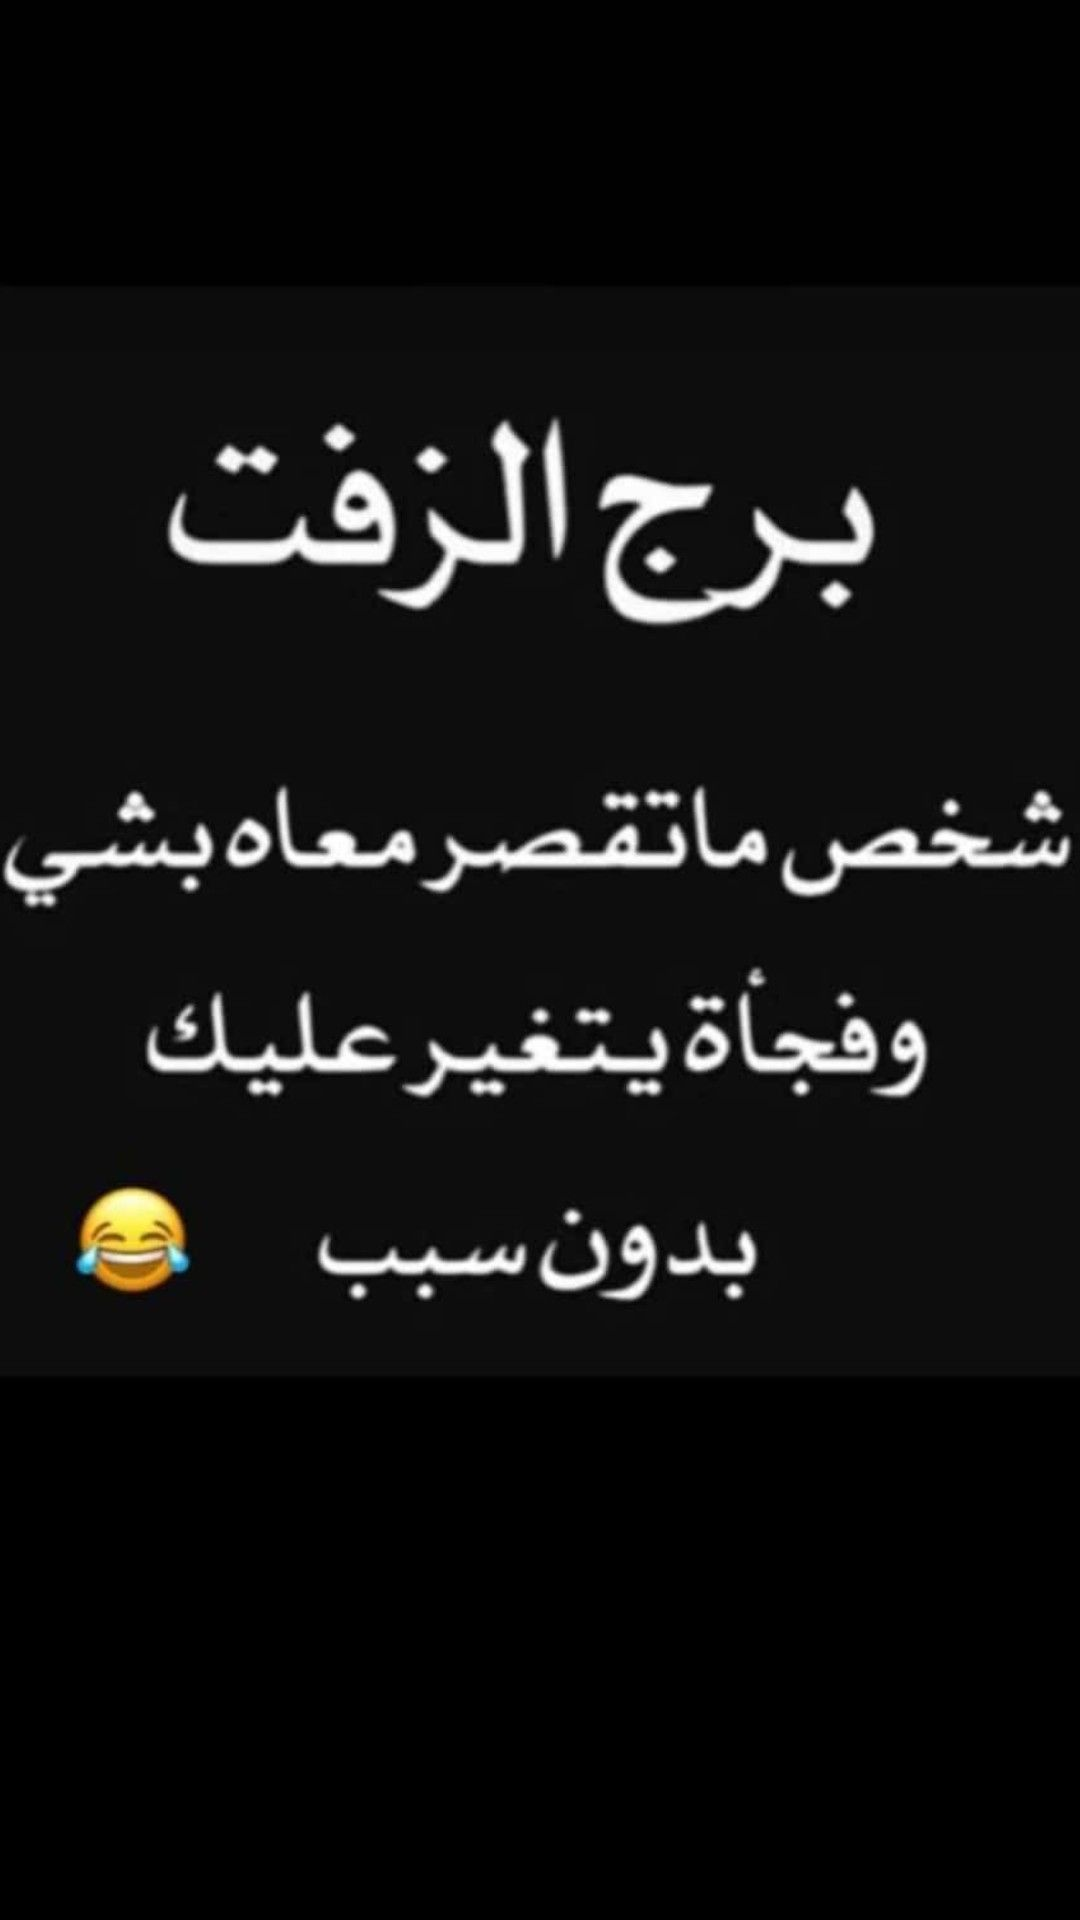 Pin By حلآة عمري On استهبال Funny Arabic Quotes Arabic Quotes Humor